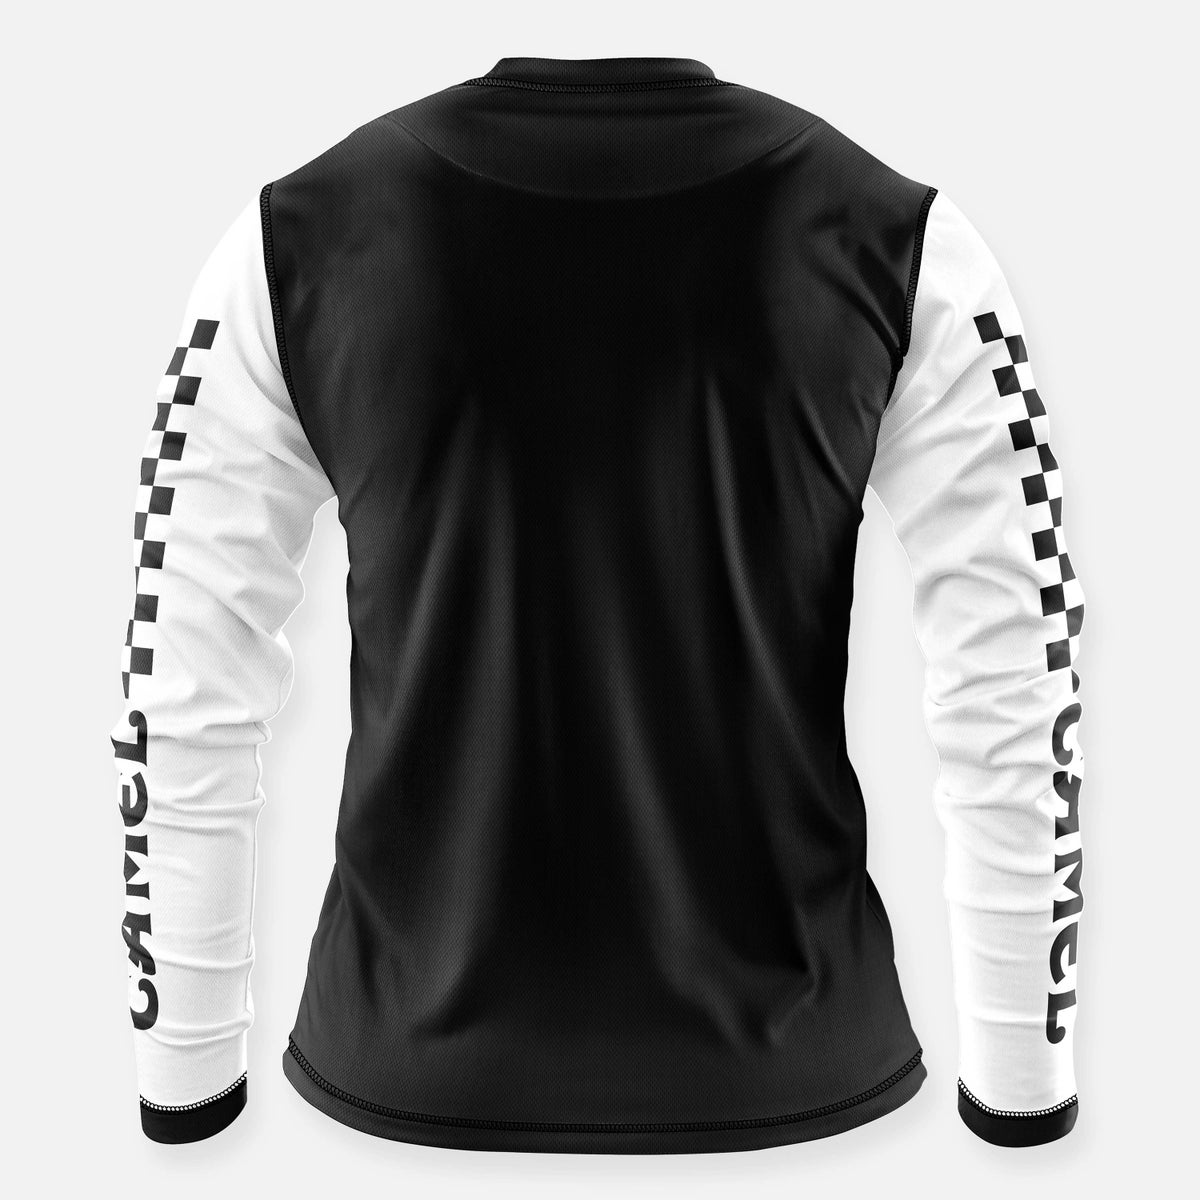 Image of CAMEL SMOKERCROSS JERSEY BLACK-WHITE